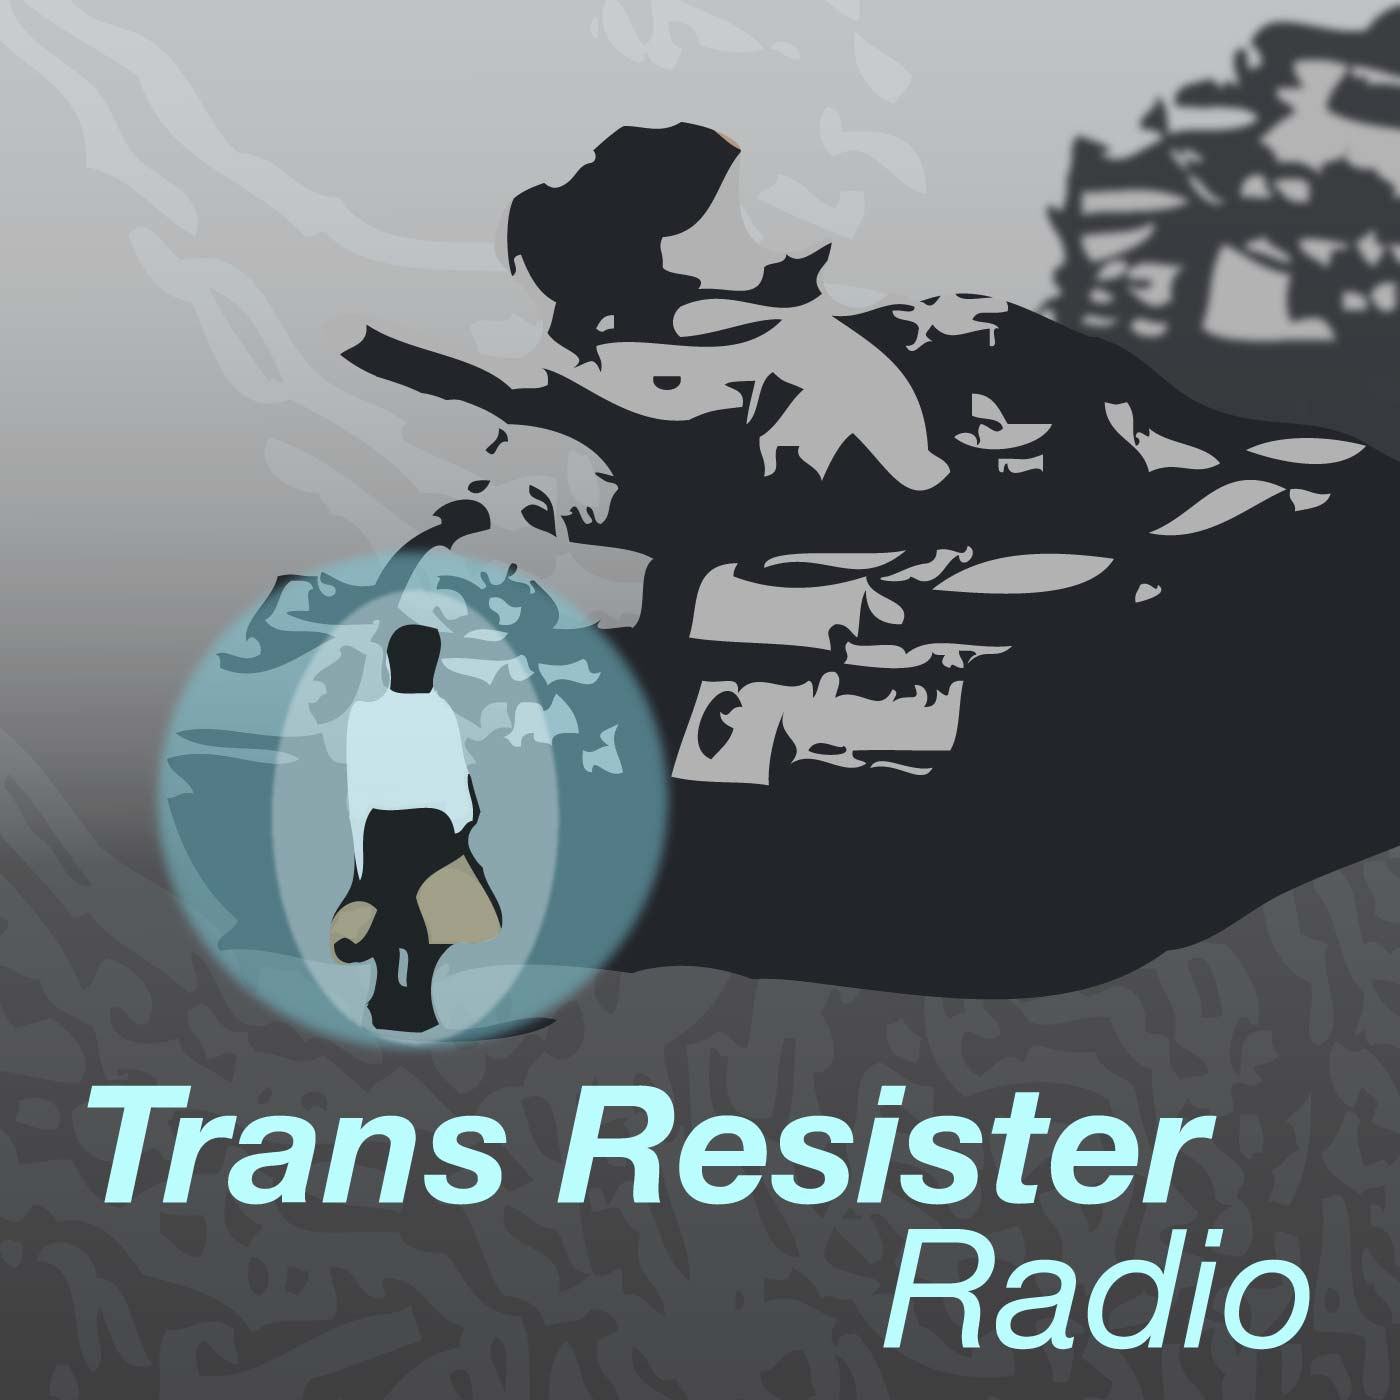 Trans Resister Radio #216 Pearse Redmond interview, Directed Energy